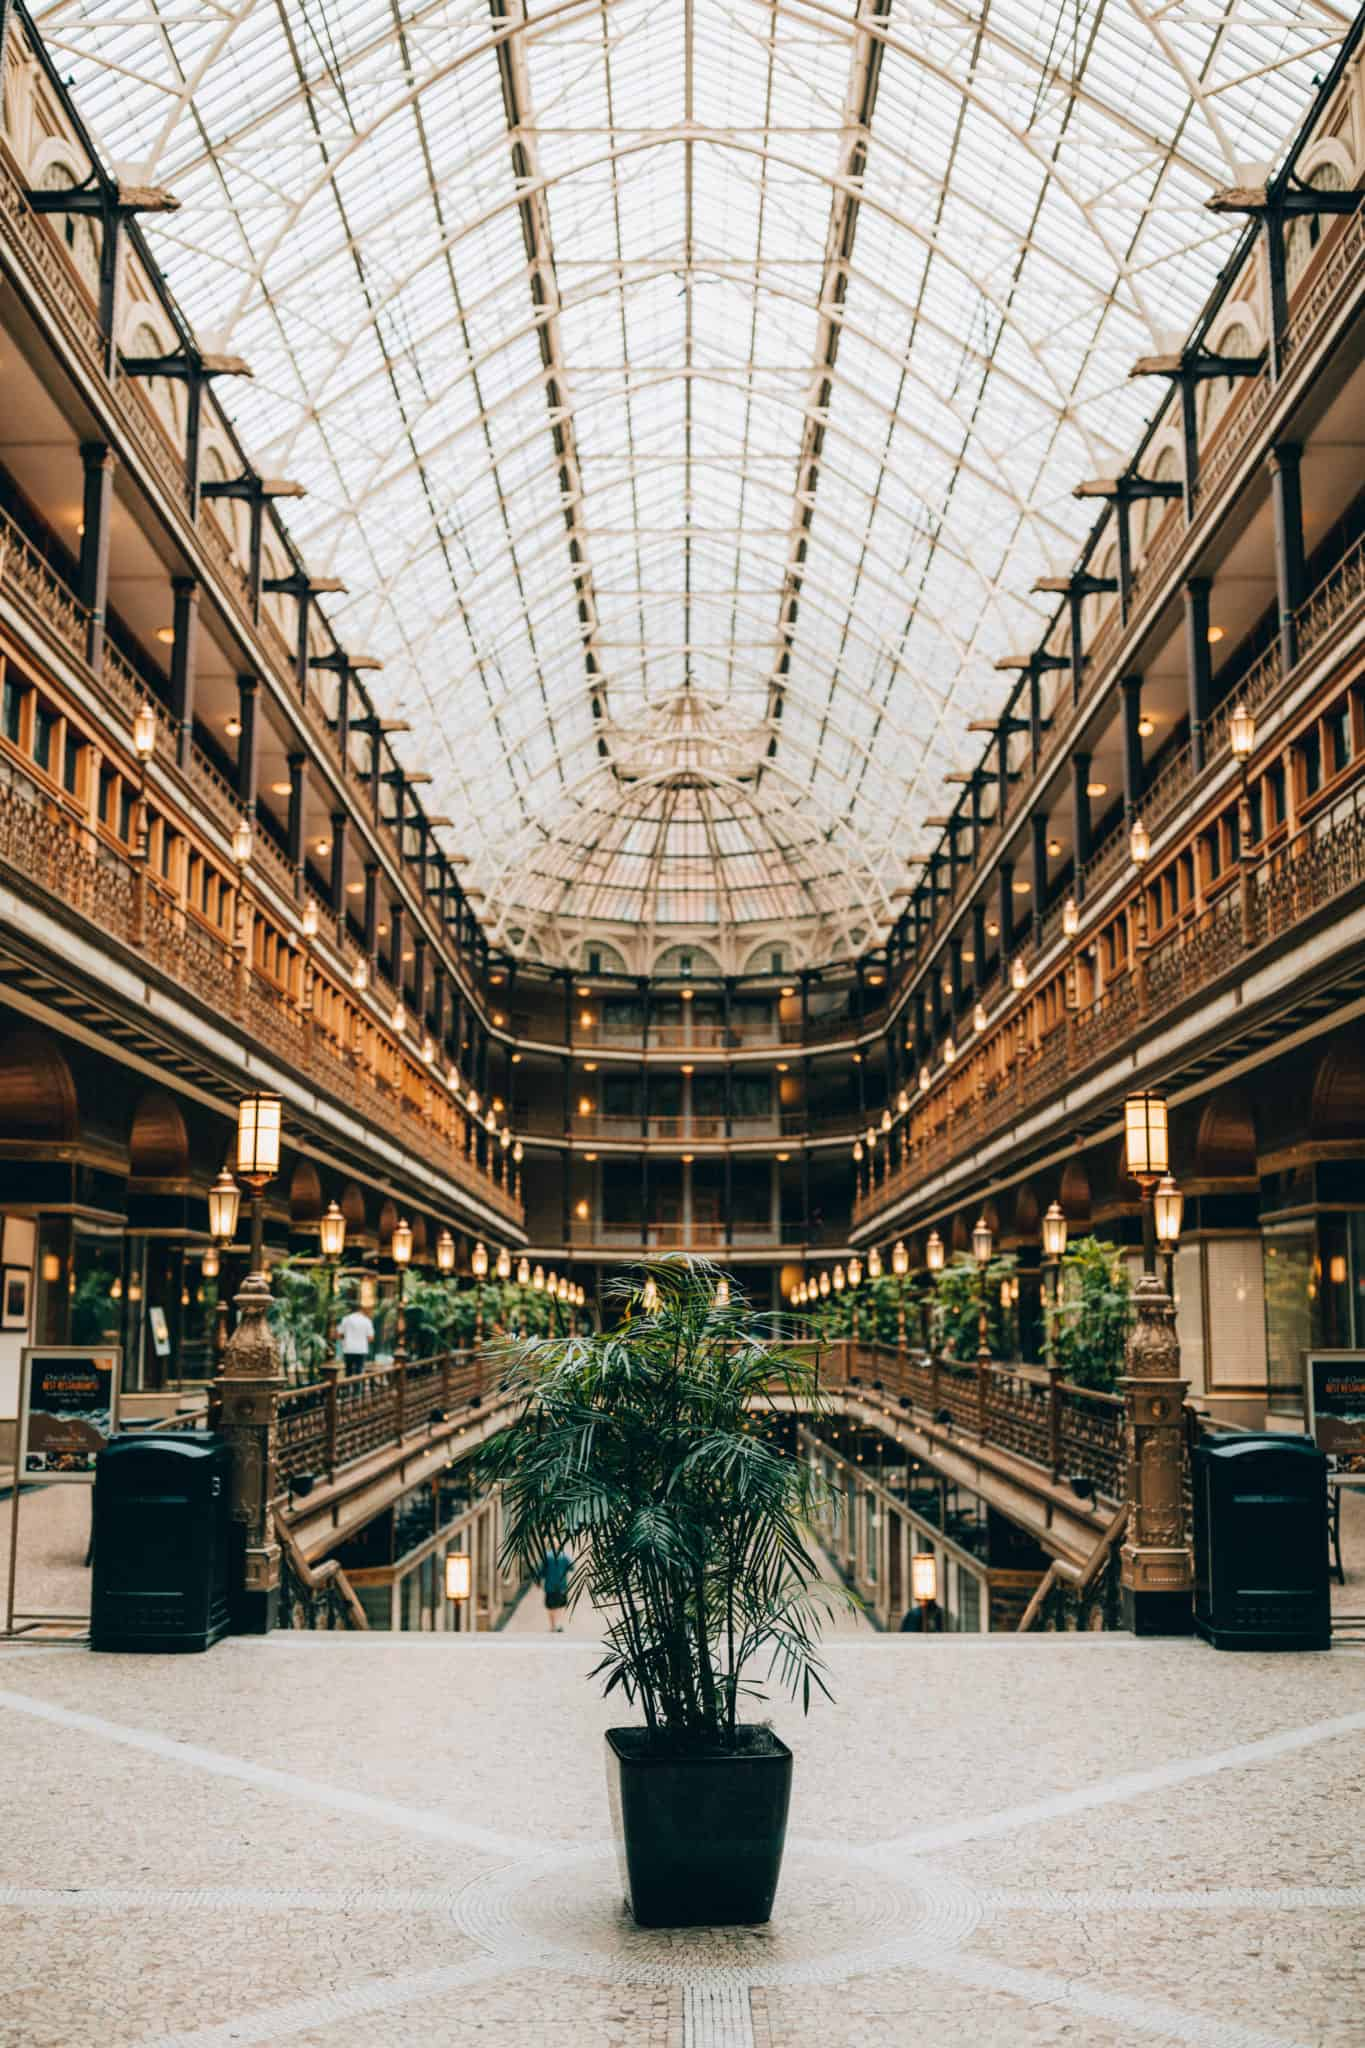 20 Must-See Instagram Spots In Cleveland, Ohio To Snap The Best ...